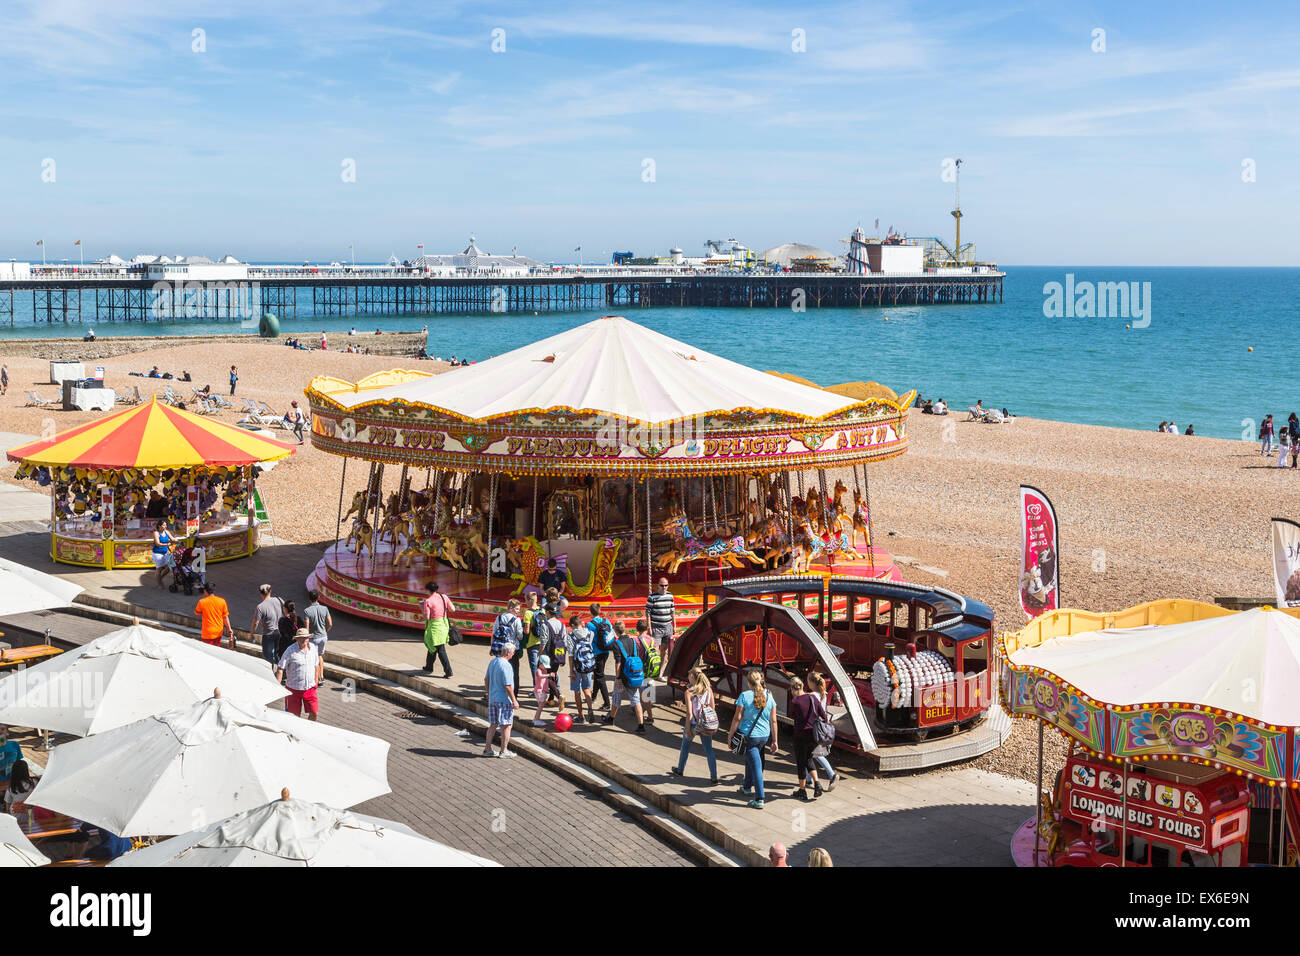 Seafront merry-go-round and funfair stalls on the beach on a sunny summer's day in Brighton, East Sussex, UK - Stock Image